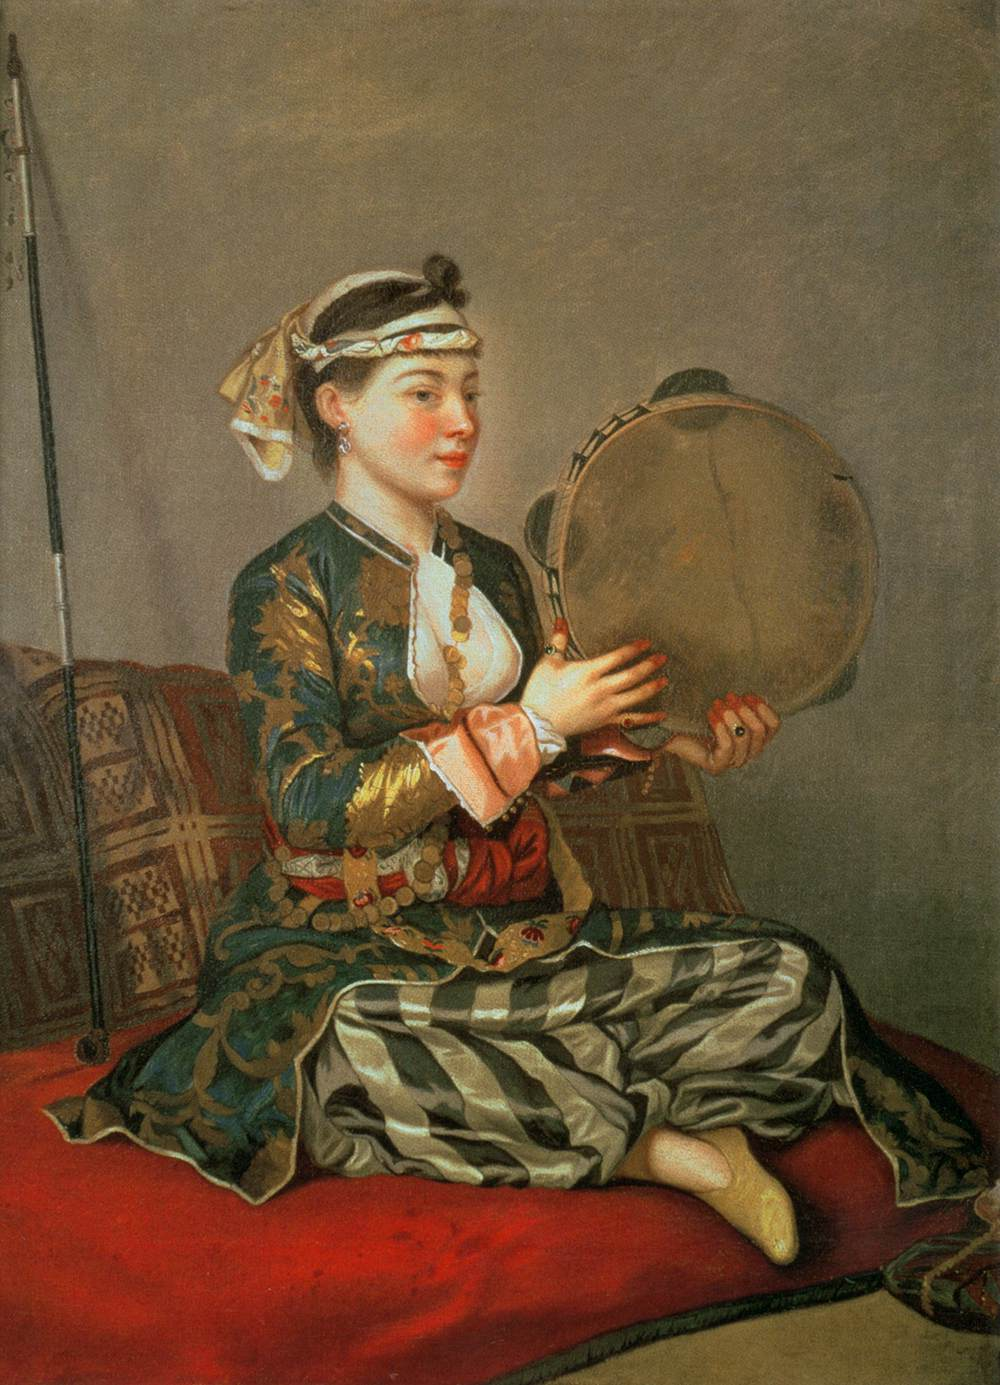 http://www.wga.hu/art/l/liotard/turkish.jpg